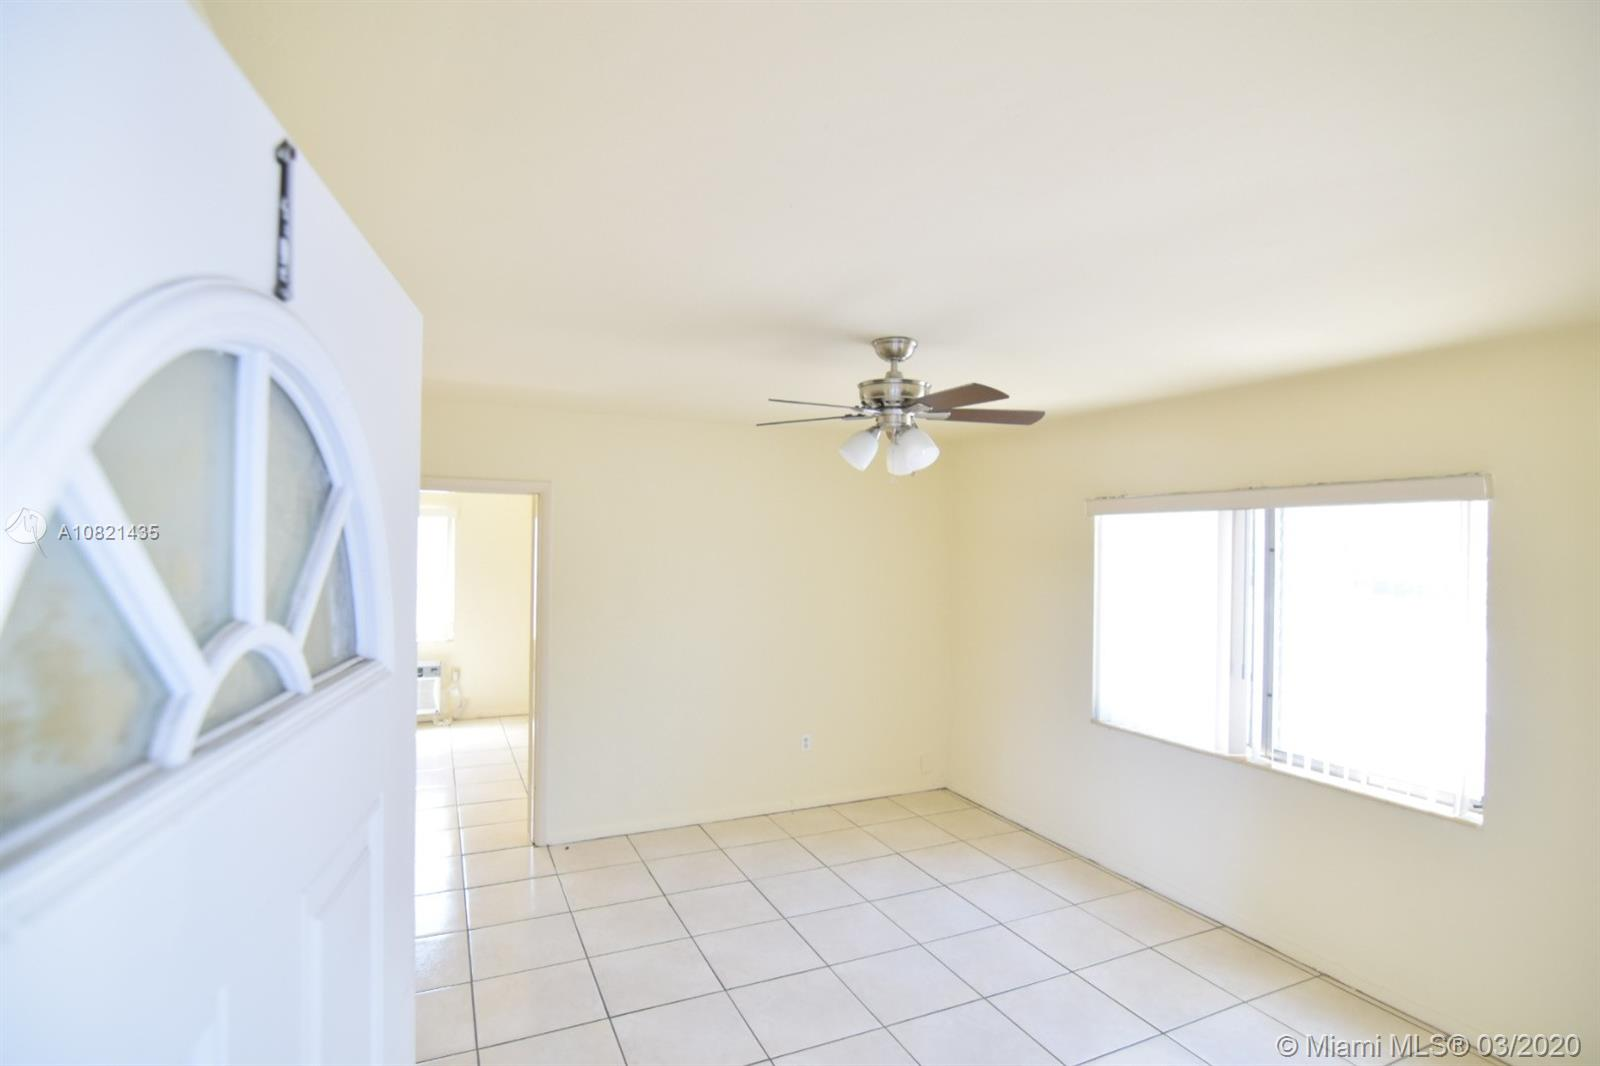 2601 SW 22nd Ave #1 For Sale A10821435, FL